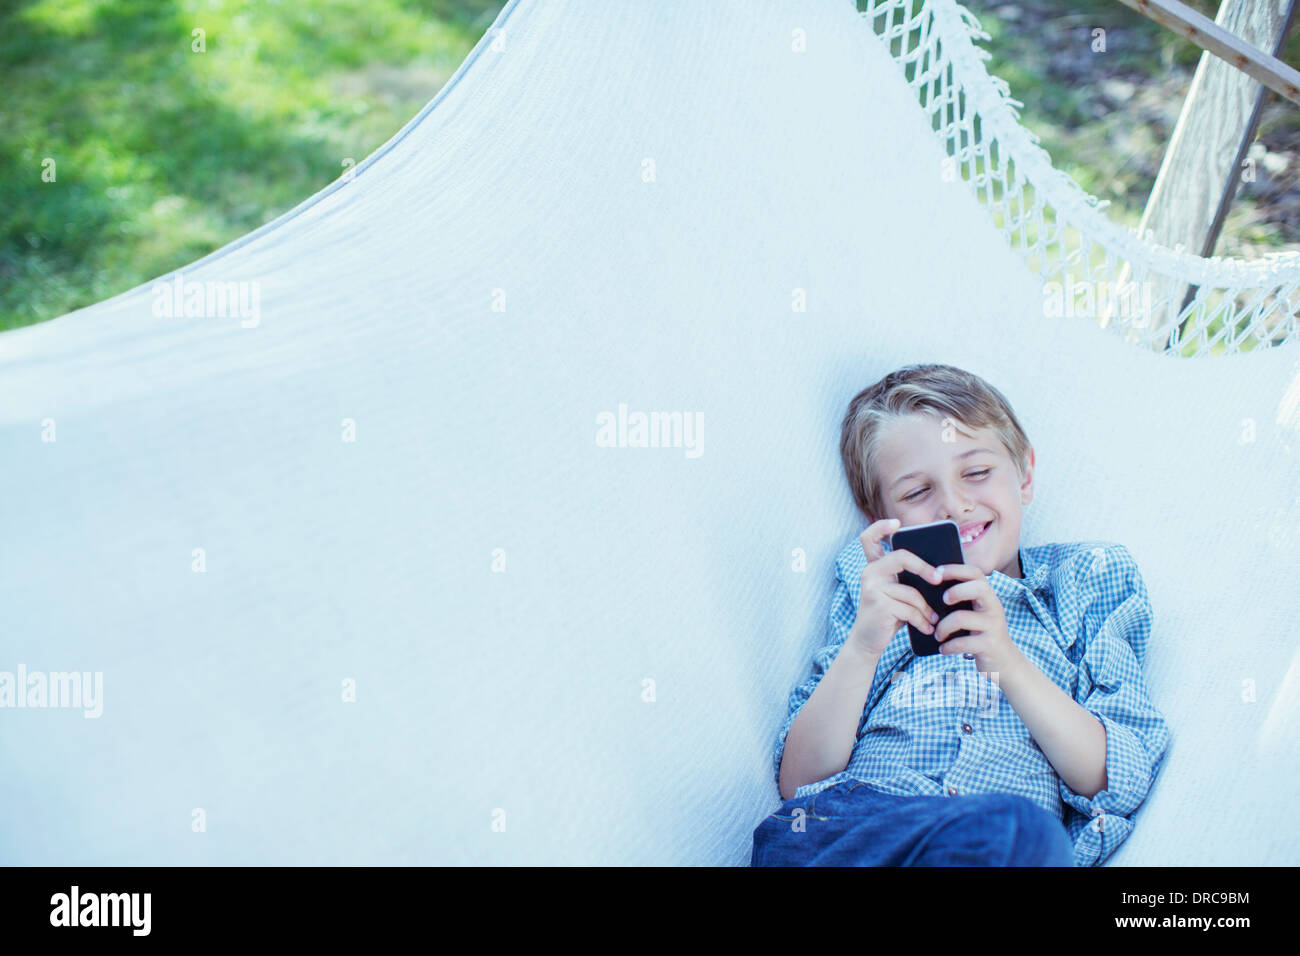 Boy using cell phone in hammock - Stock Image